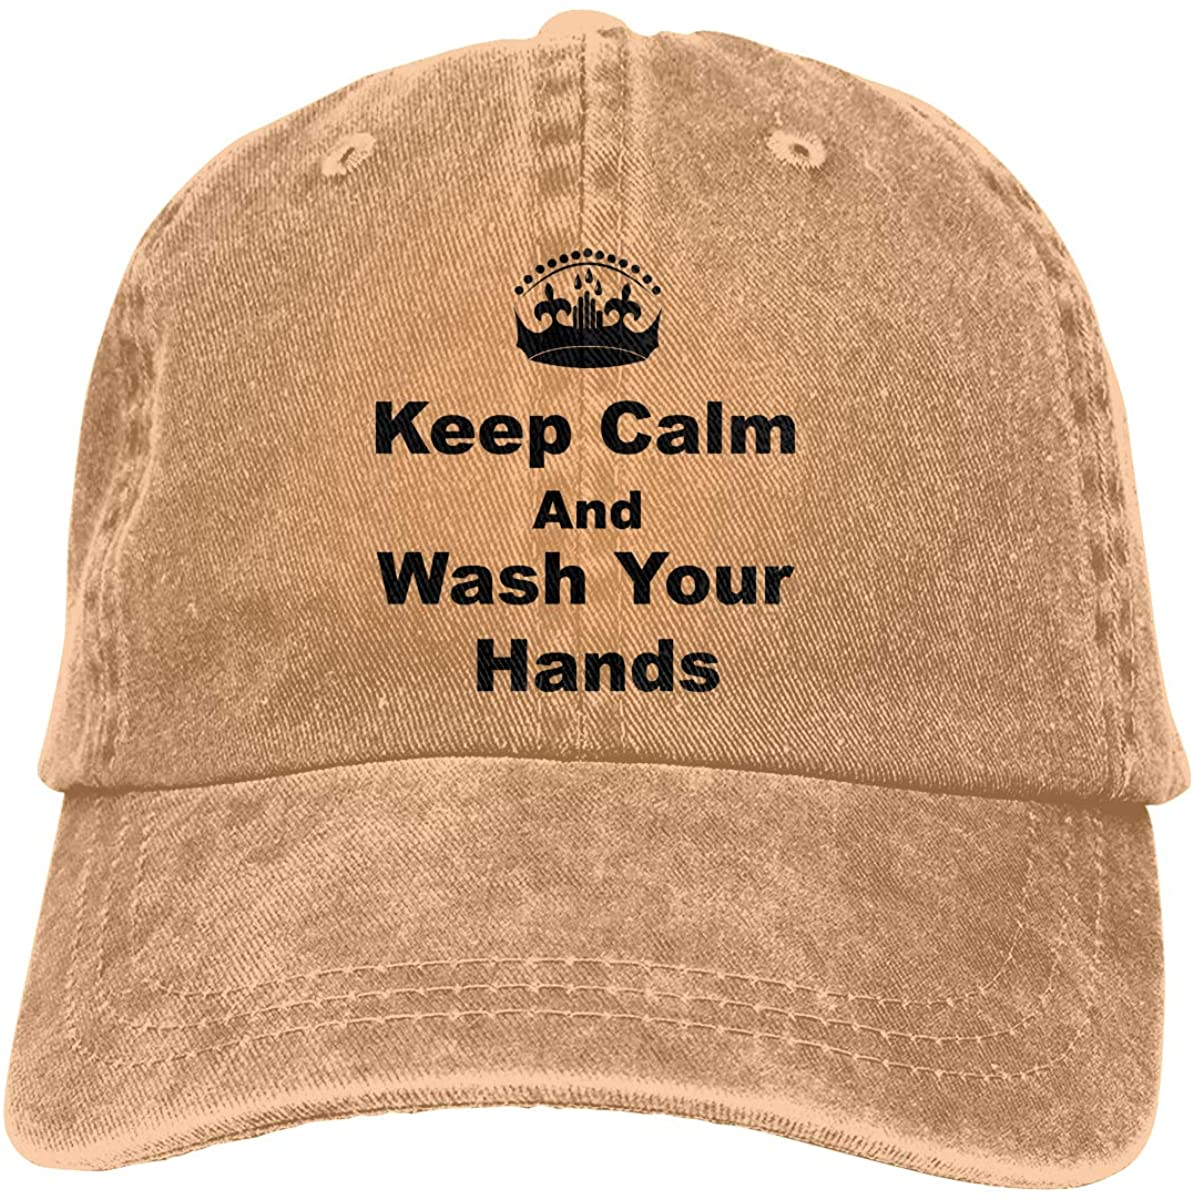 Keep Calm and Wash Your Hands 1 Adult Fashion Cool Adjustable Denim Cowboy Hat